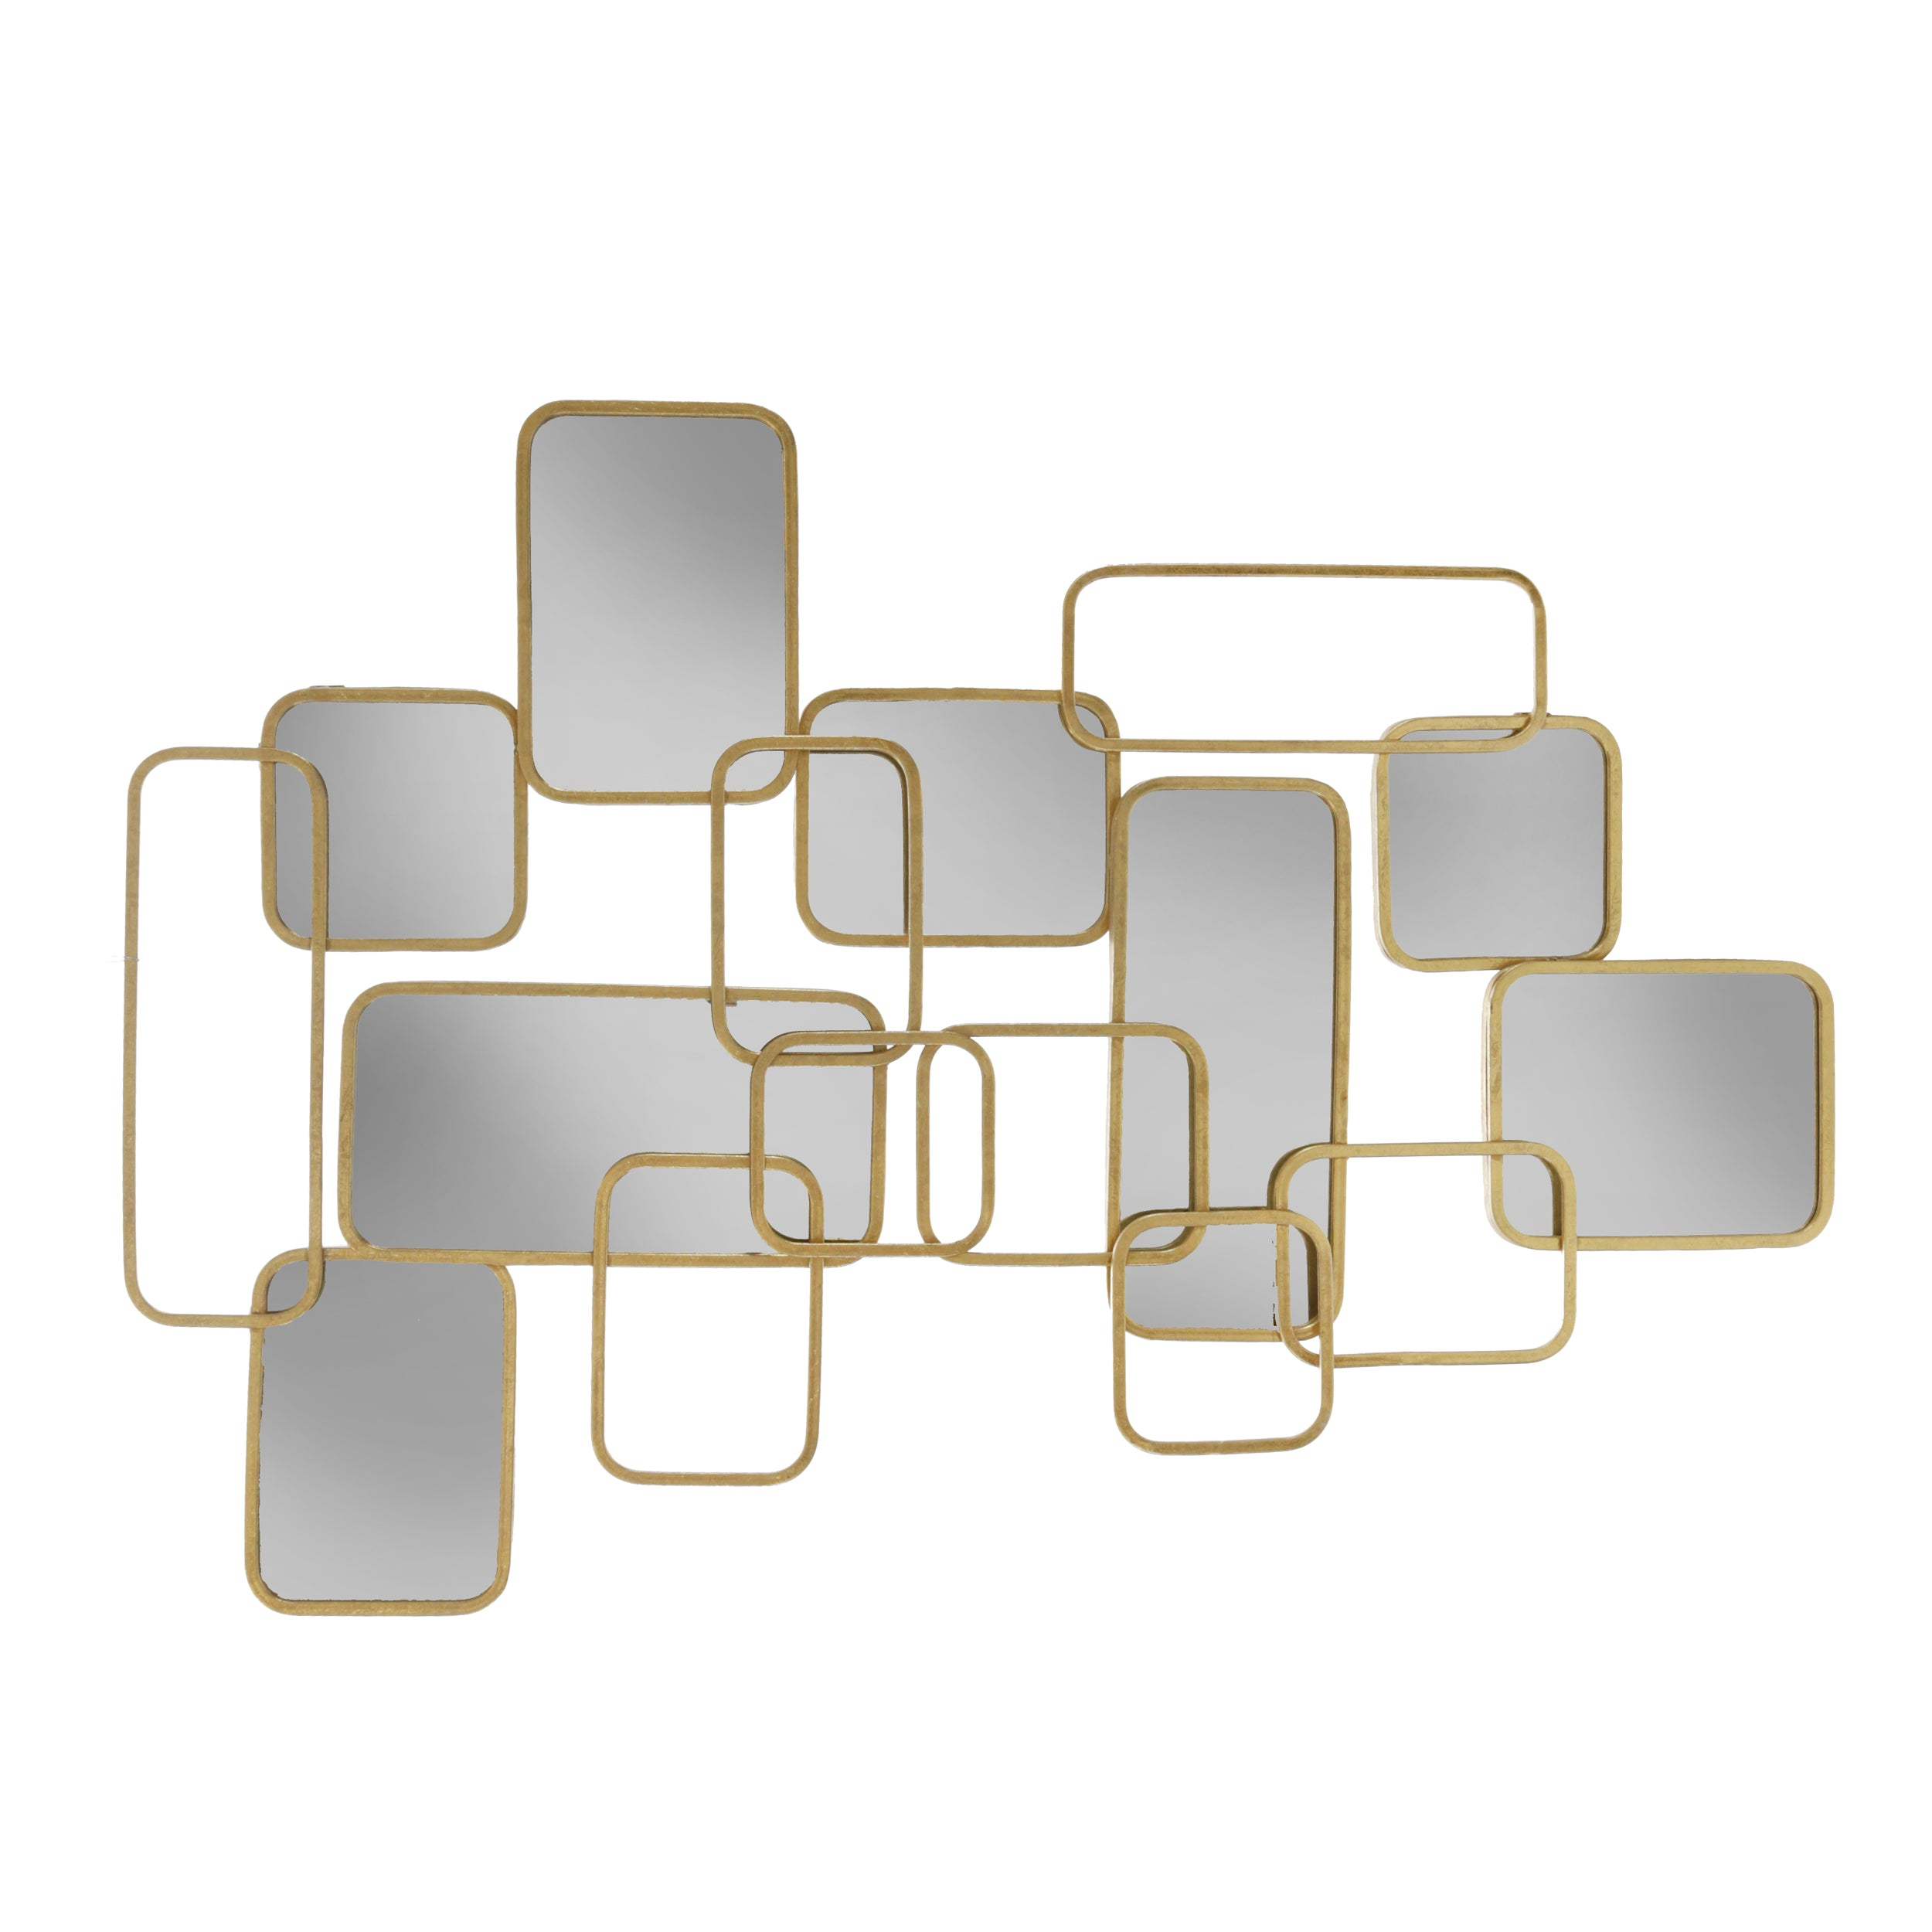 "METAL 39"" ABSTRACT MIRRORED WALL DECOR, GOLD"